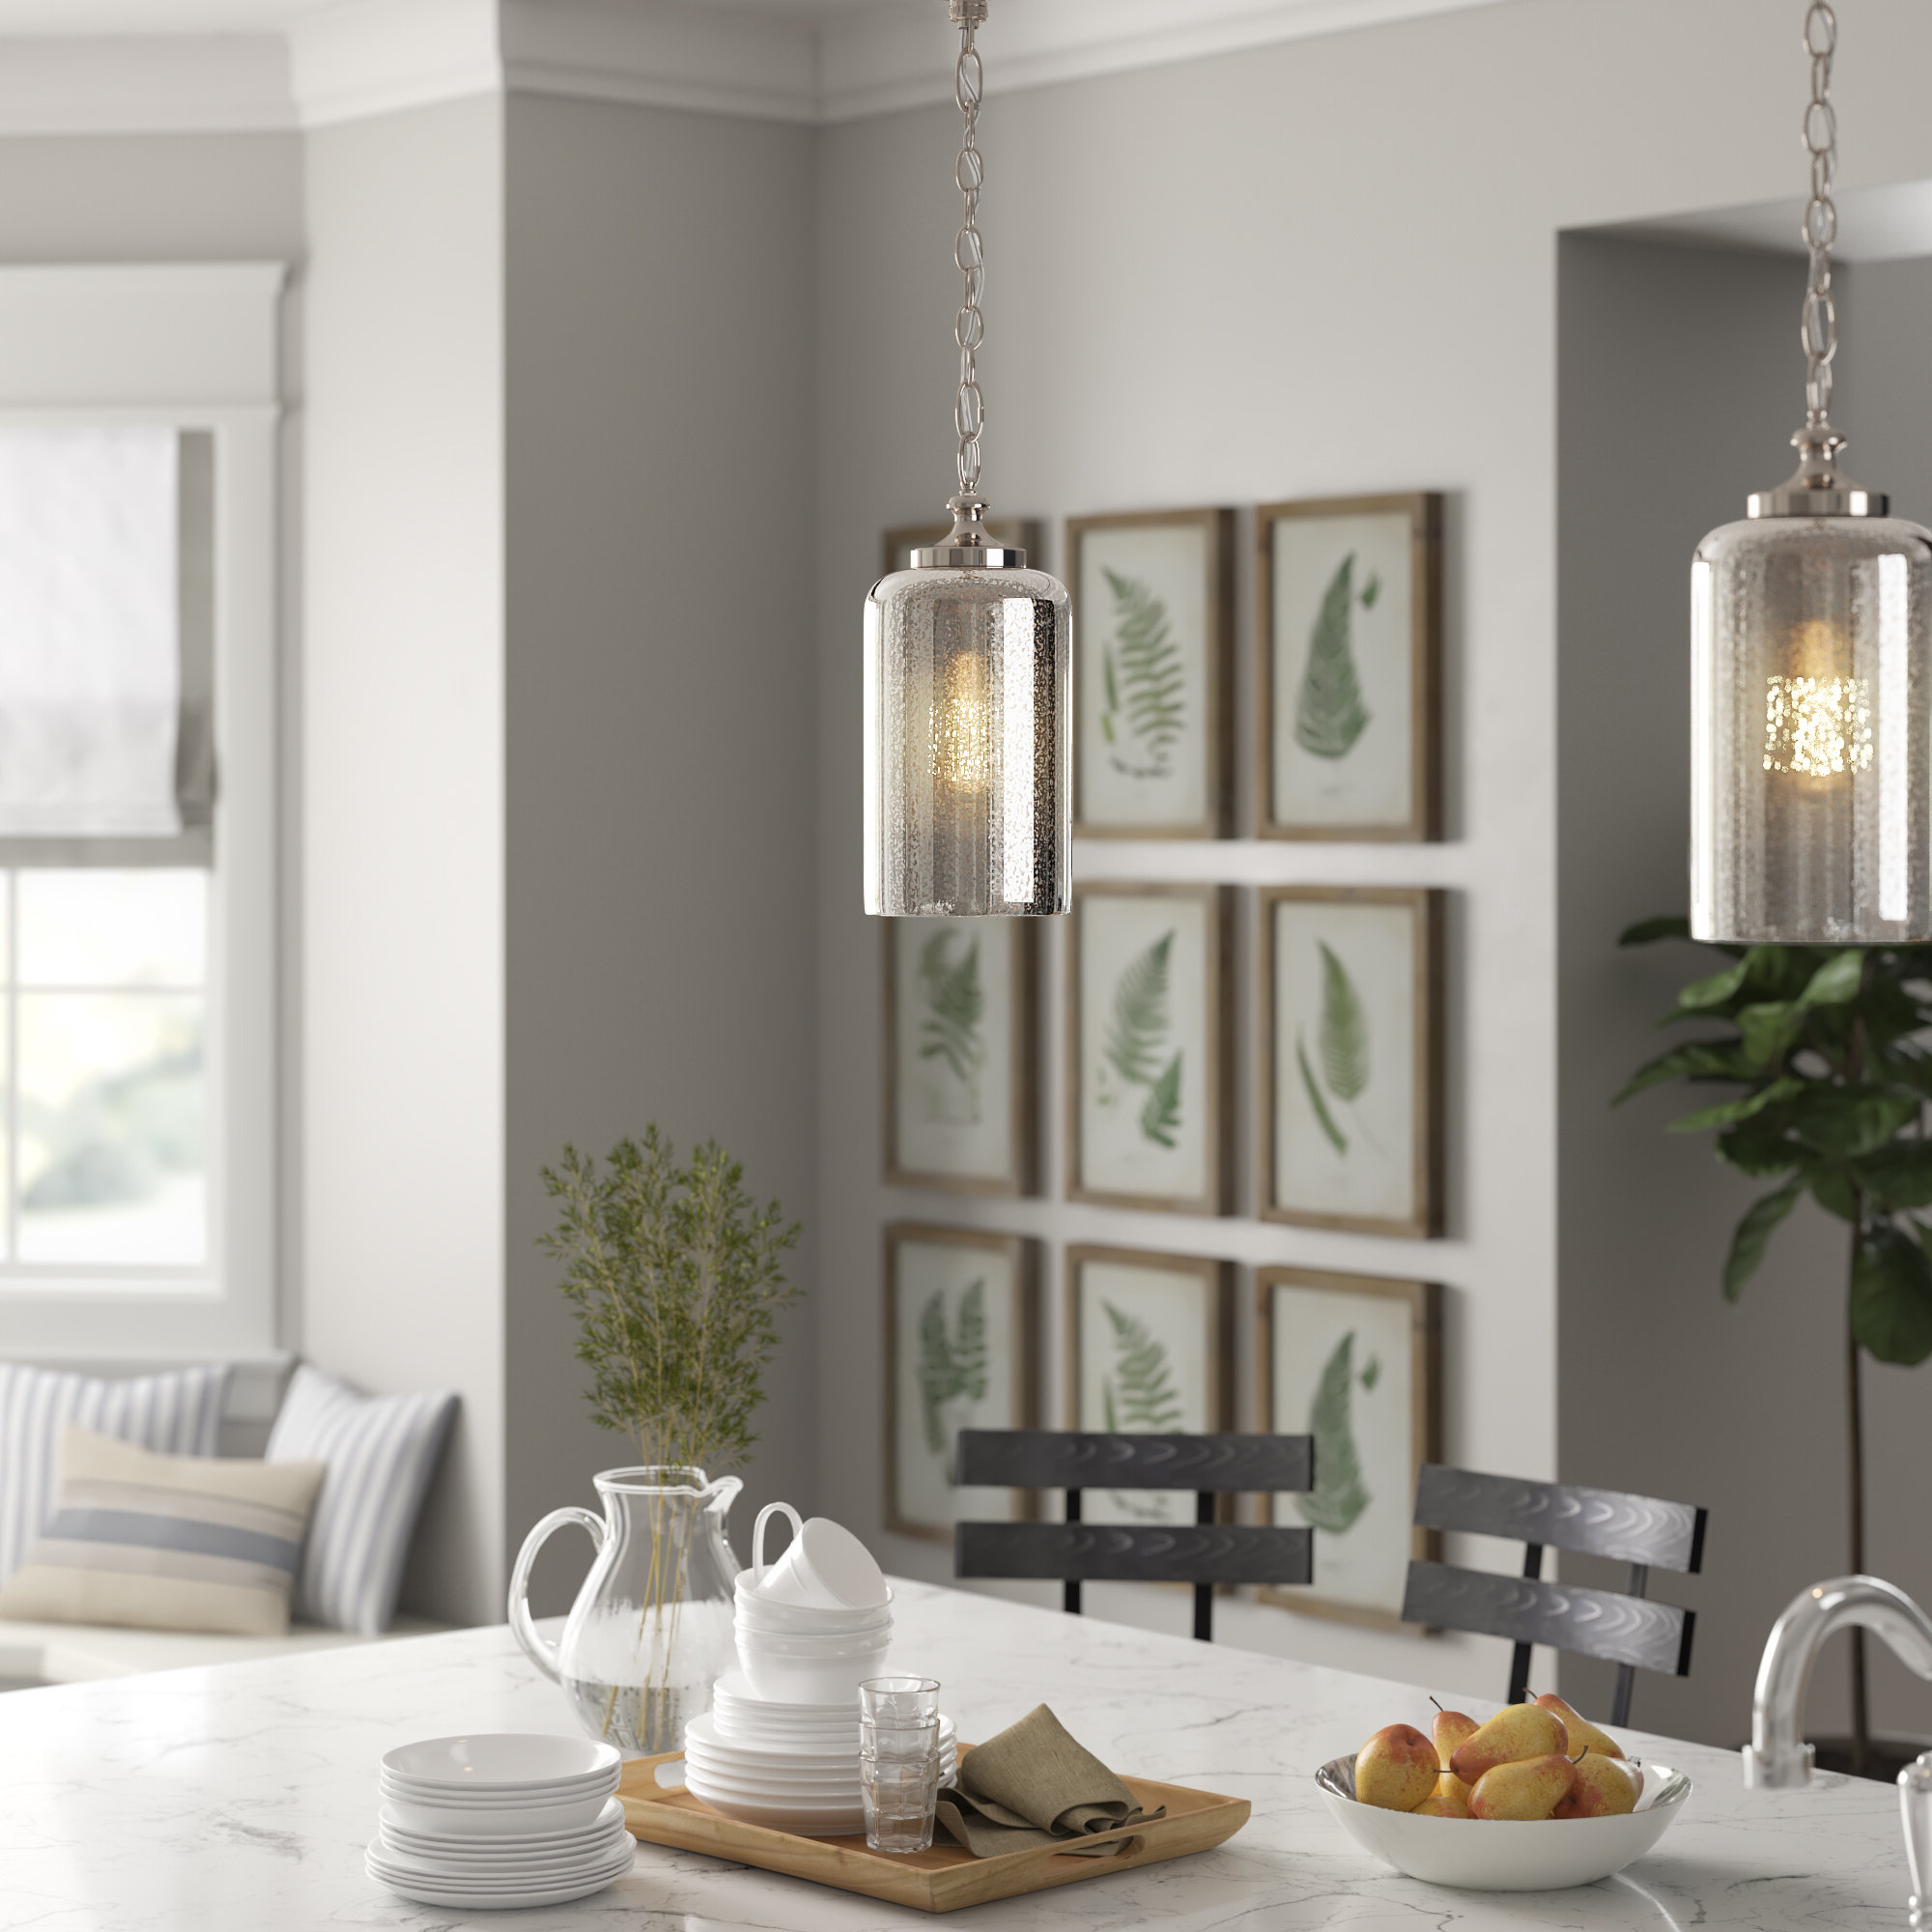 [%Mercury Pendant Lighting Sale – Up To 65% Off Until For Current Ammerman 1 Light Cone Pendants Ammerman 1 Light Cone Pendants With Regard To Trendy Mercury Pendant Lighting Sale – Up To 65% Off Until Popular Ammerman 1 Light Cone Pendants Pertaining To Mercury Pendant Lighting Sale – Up To 65% Off Until Best And Newest Mercury Pendant Lighting Sale – Up To 65% Off Until Pertaining To Ammerman 1 Light Cone Pendants%] (View 1 of 20)